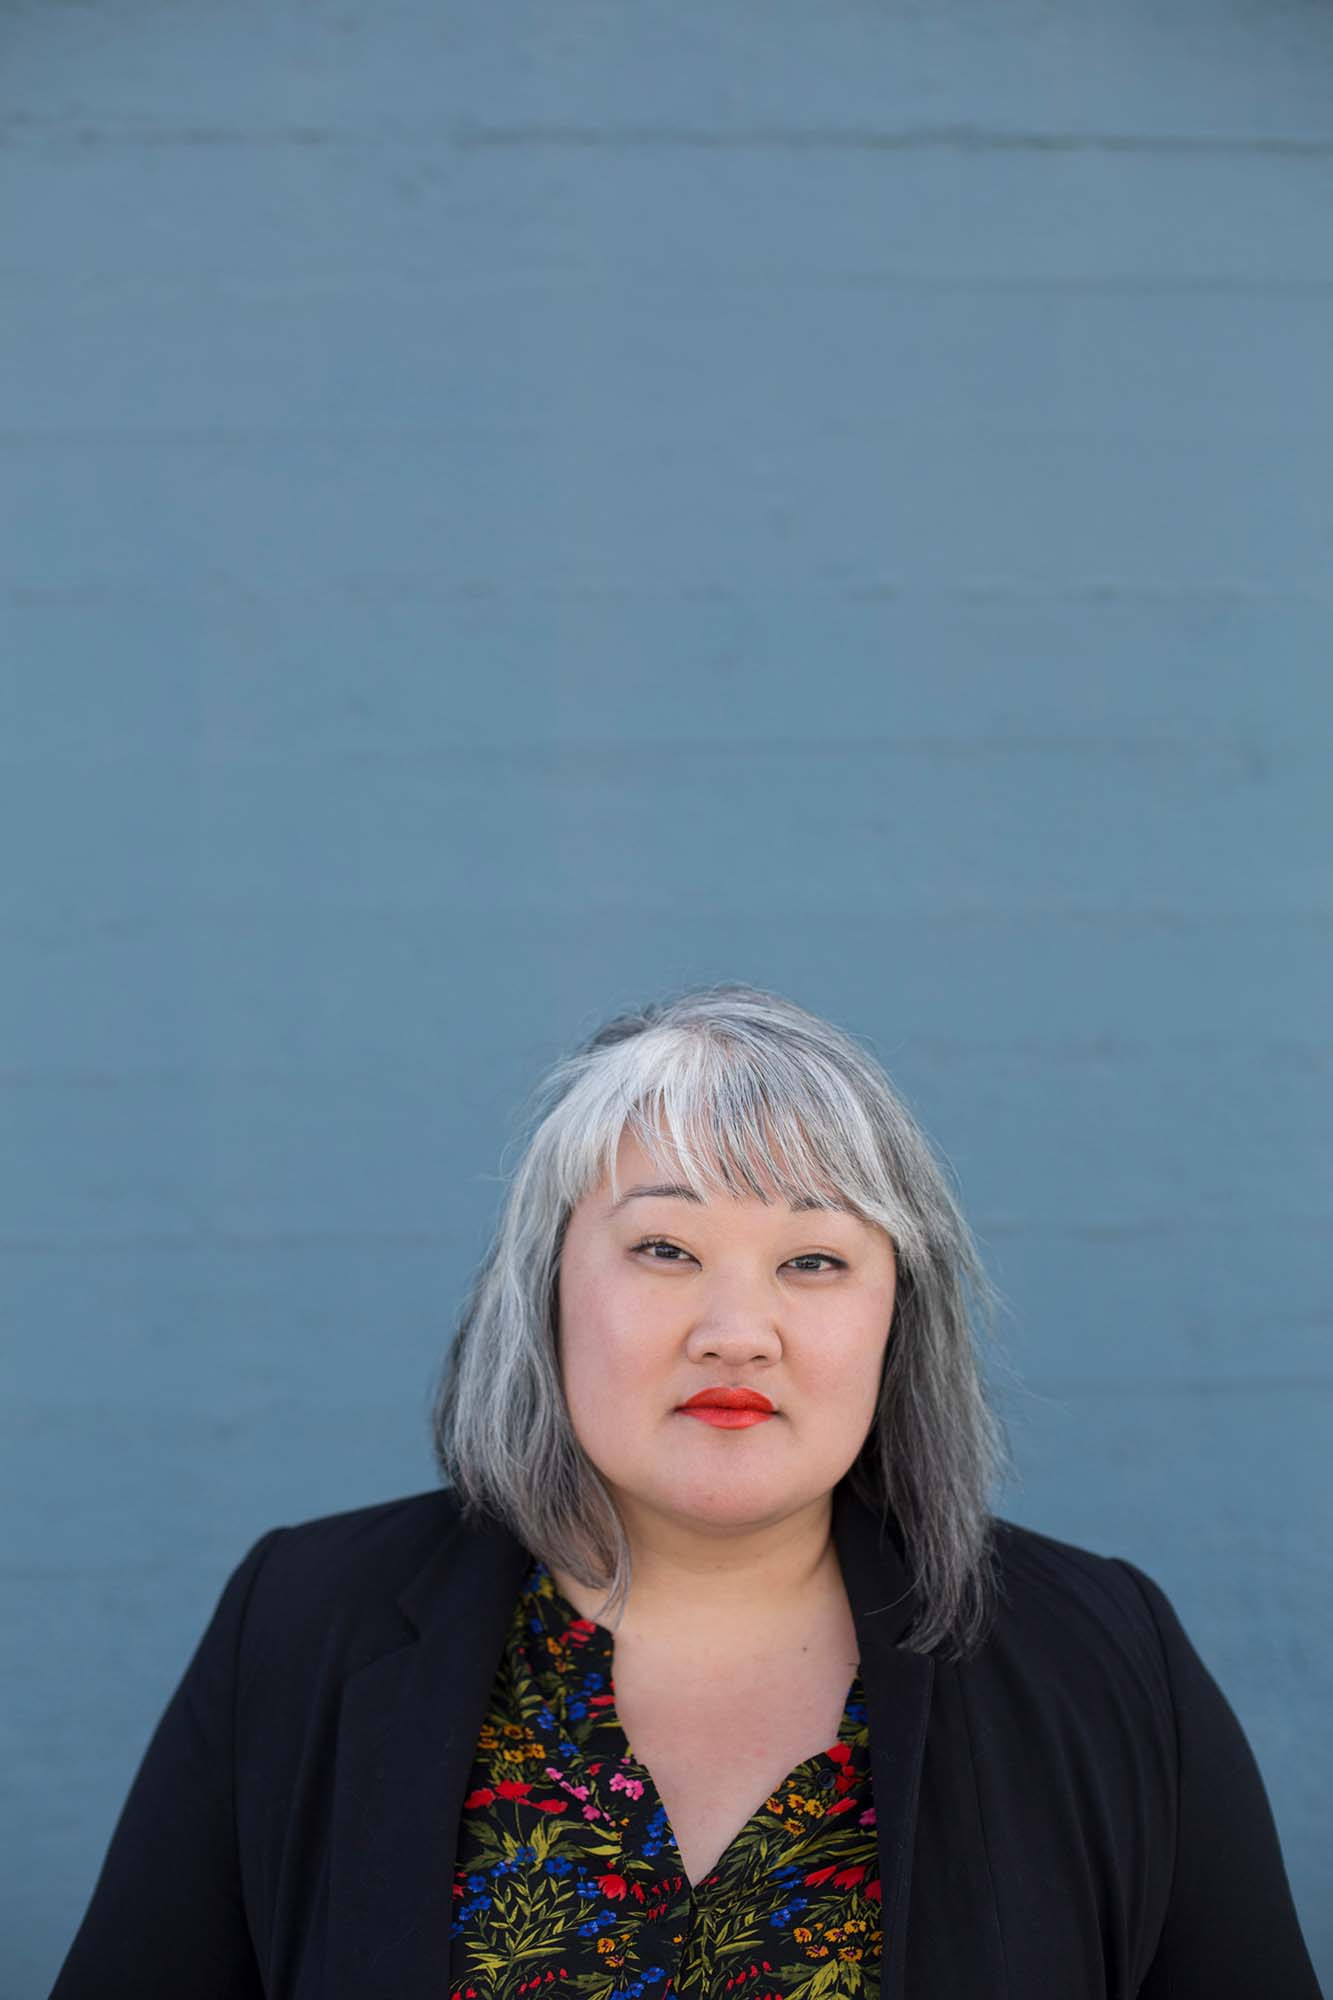 headshot of a woman with short grey hair in front of a blue wall